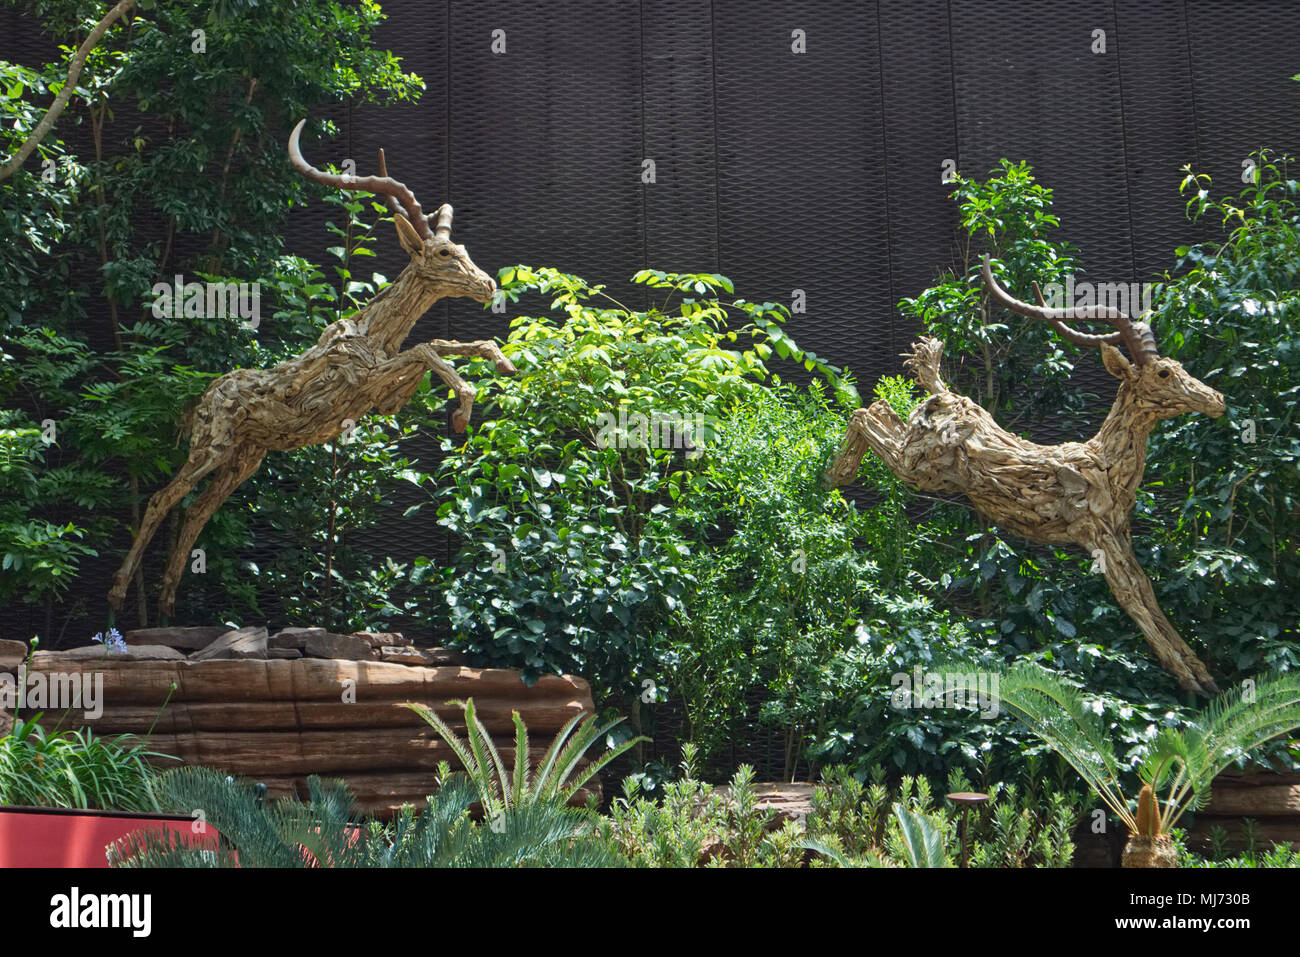 Singapore / Singapore - April 9 2018: A sculpture of two impalas jumping, located in the South African Garden of the Flower Dome in the Gardens by the - Stock Image